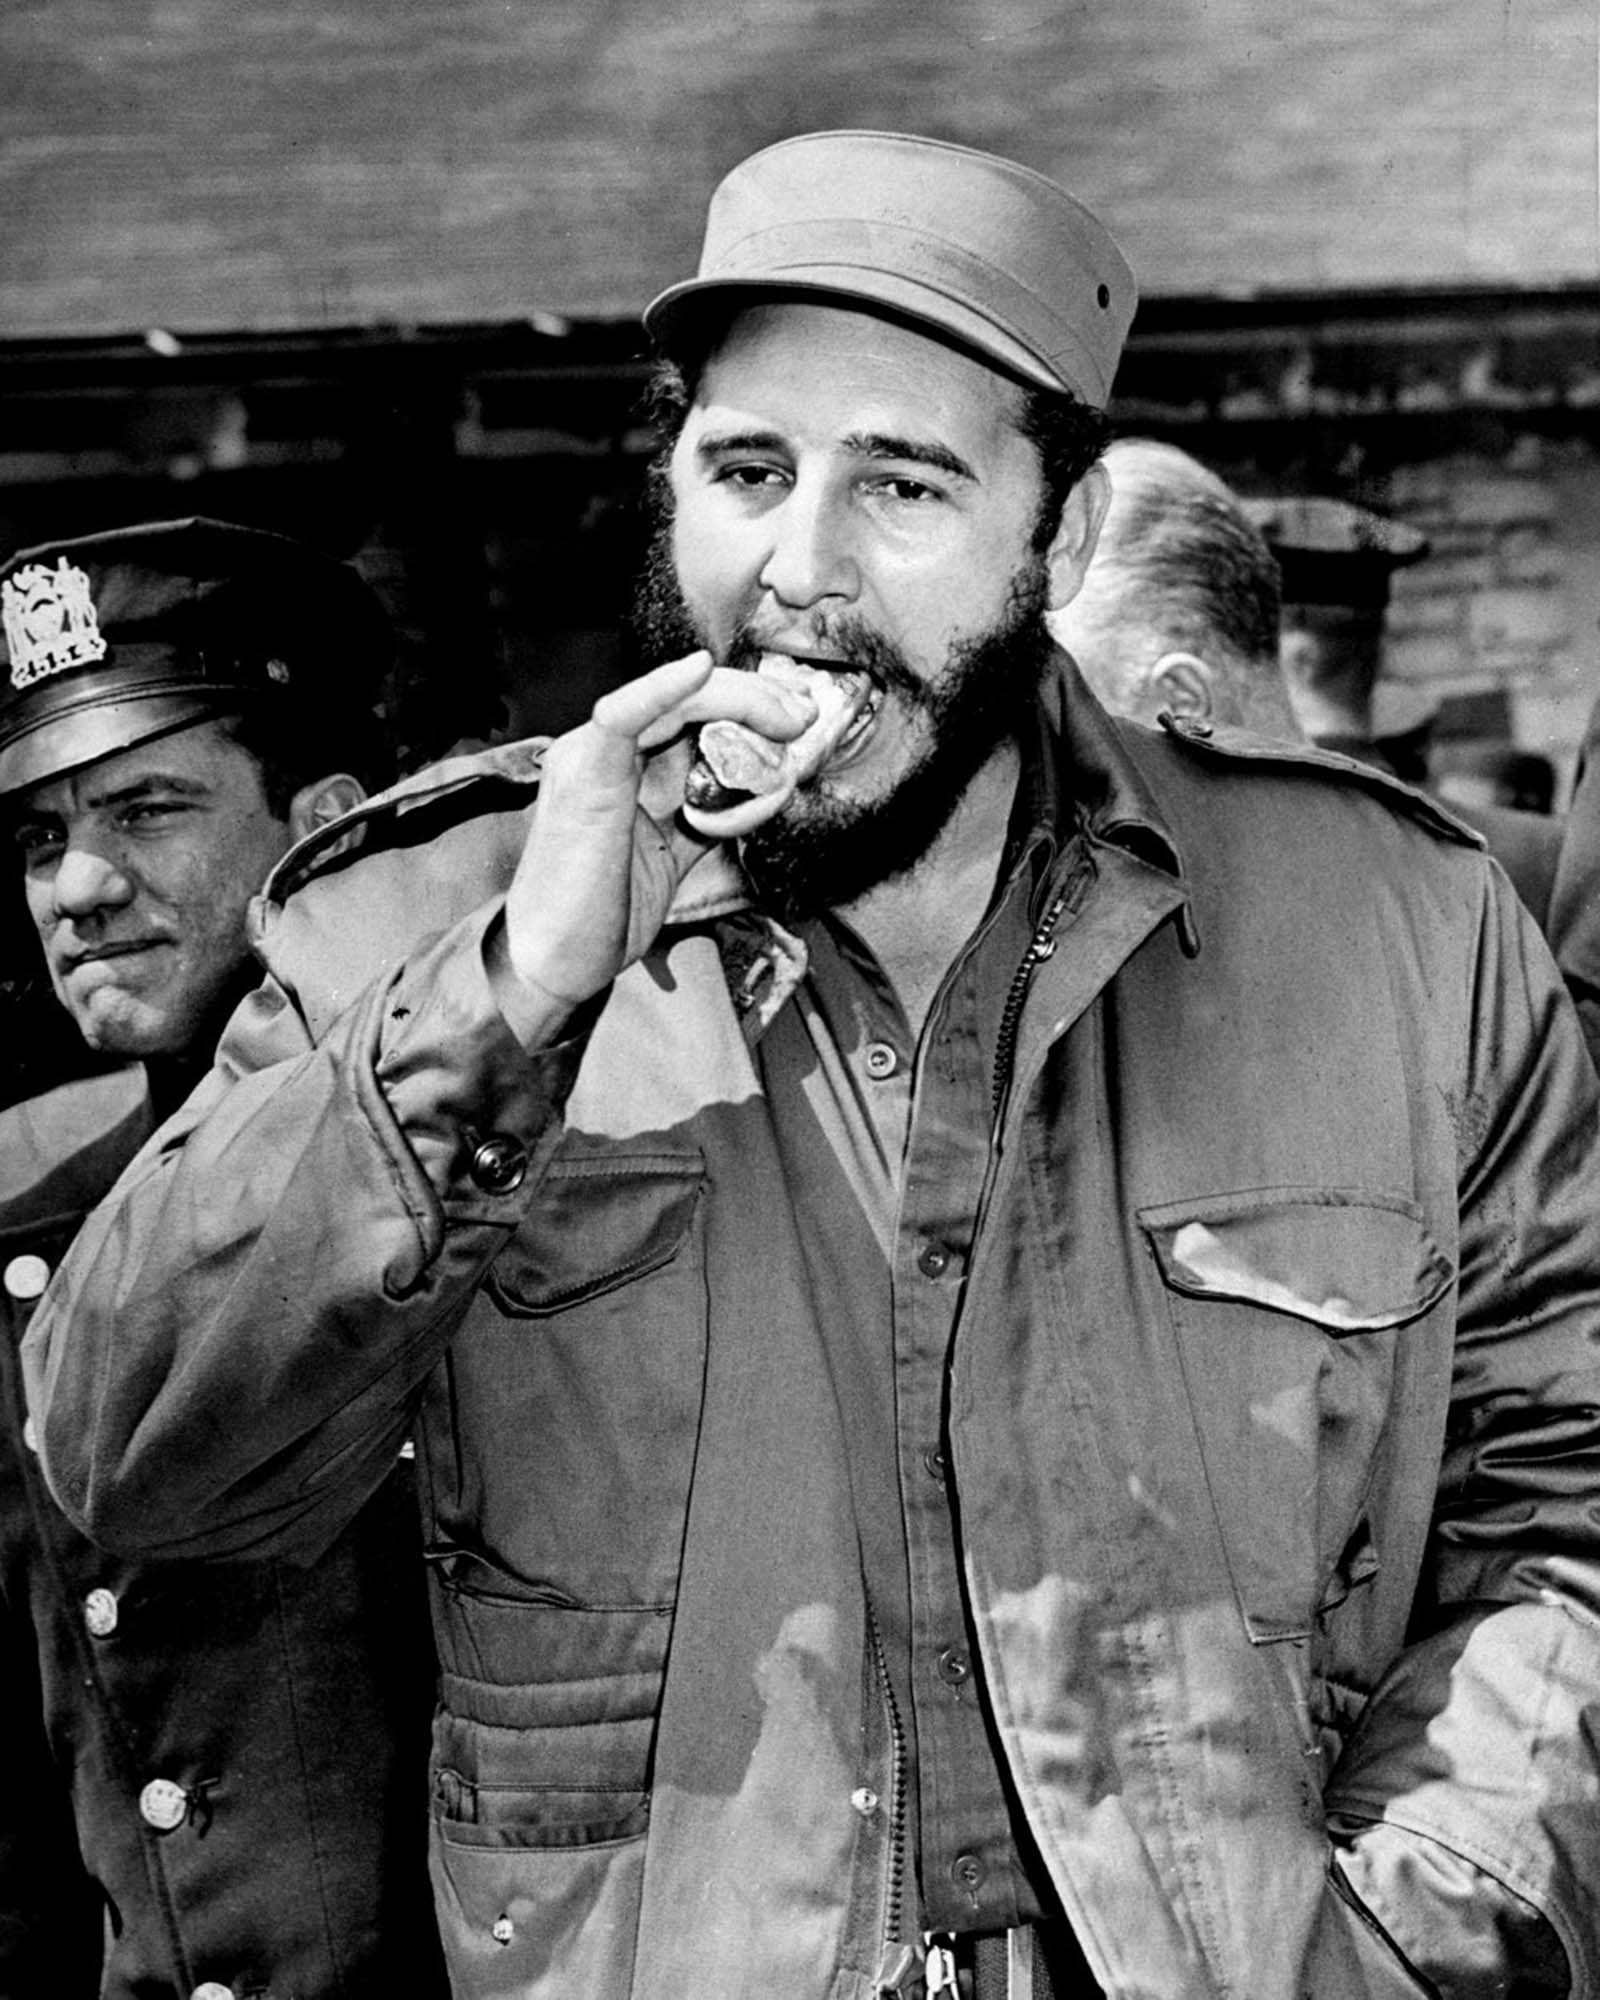 Castro takes a bite out of a hot dog at the Bronx Zoo.